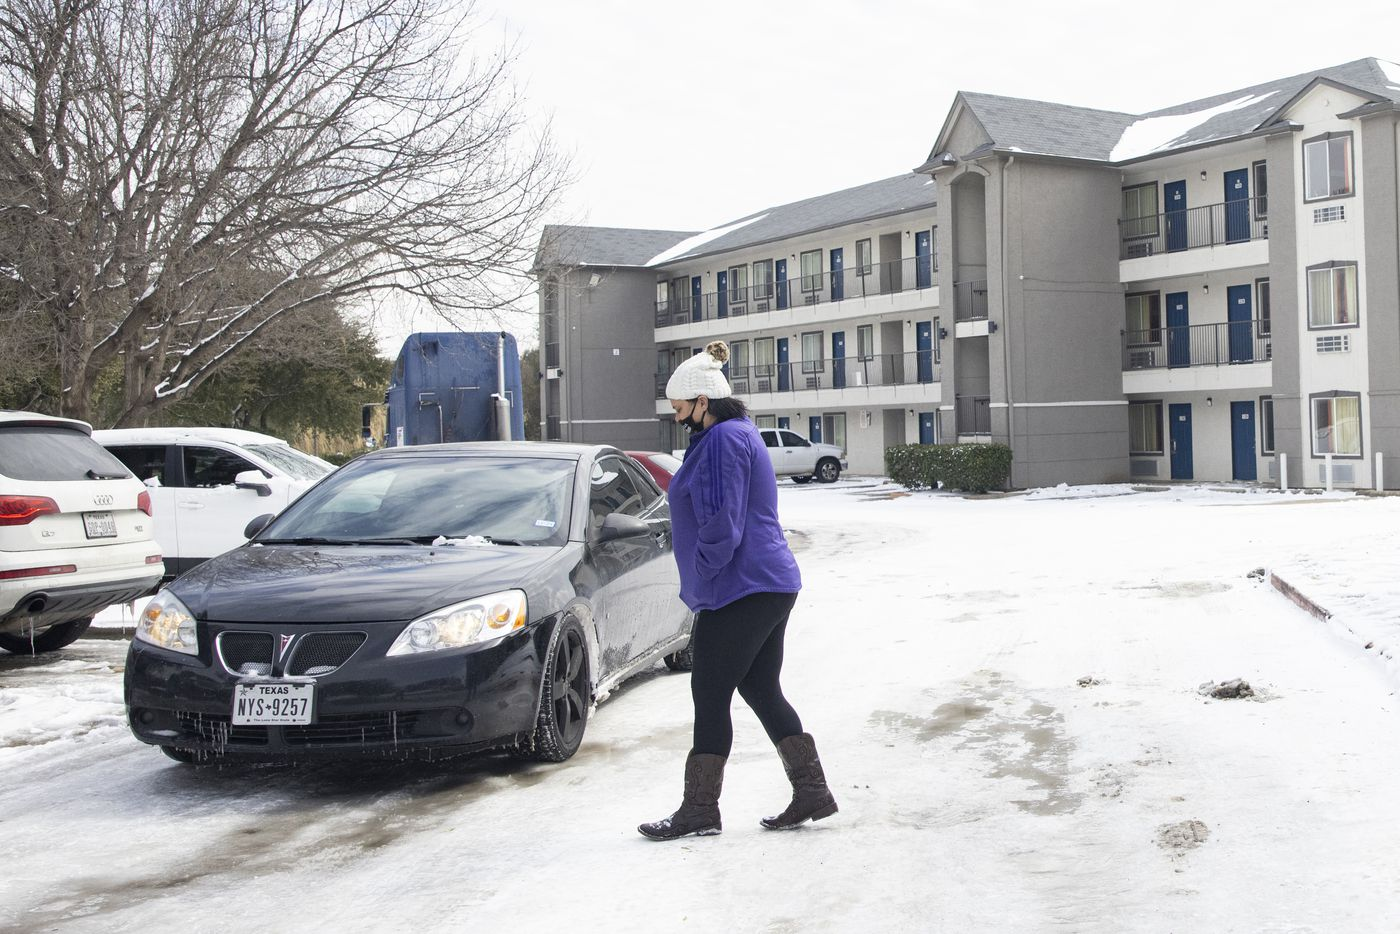 Jammie McGee from Dallas walks back to her car after finding out the Motel 6 in North Arlington she reserved a room from doesn't have power on Tuesday, Feb. 16, 2021. McGee said her Westmoreland Rd apartment lost electricity and water. (Juan Figueroa/ The Dallas Morning News)